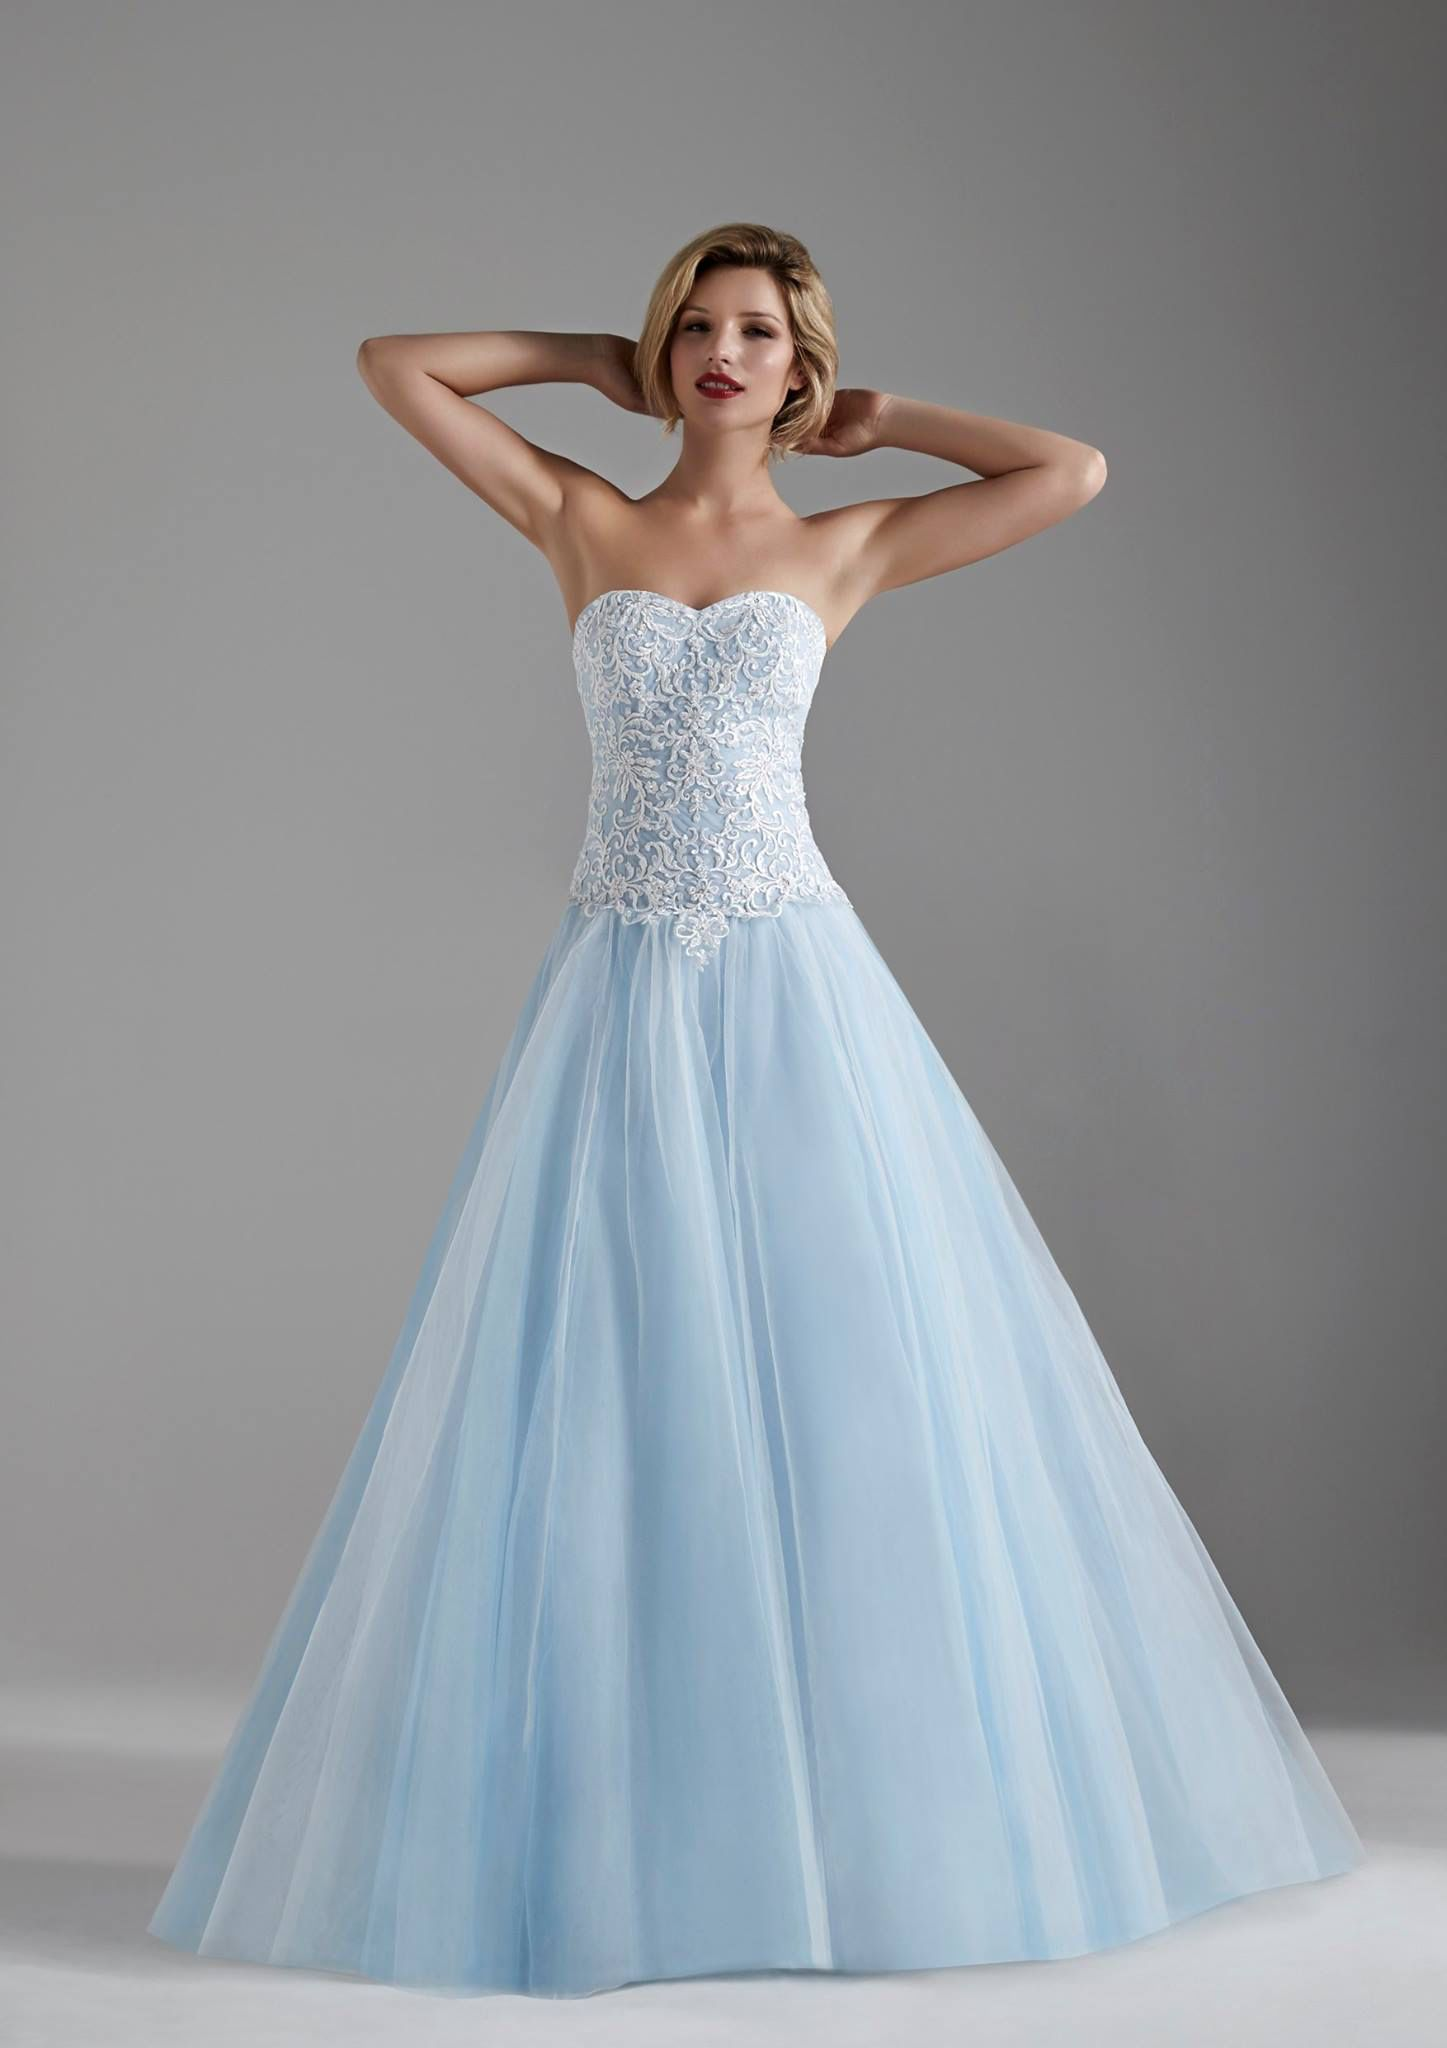 Happy friday everyone fancy a touch of cinderella magic on your